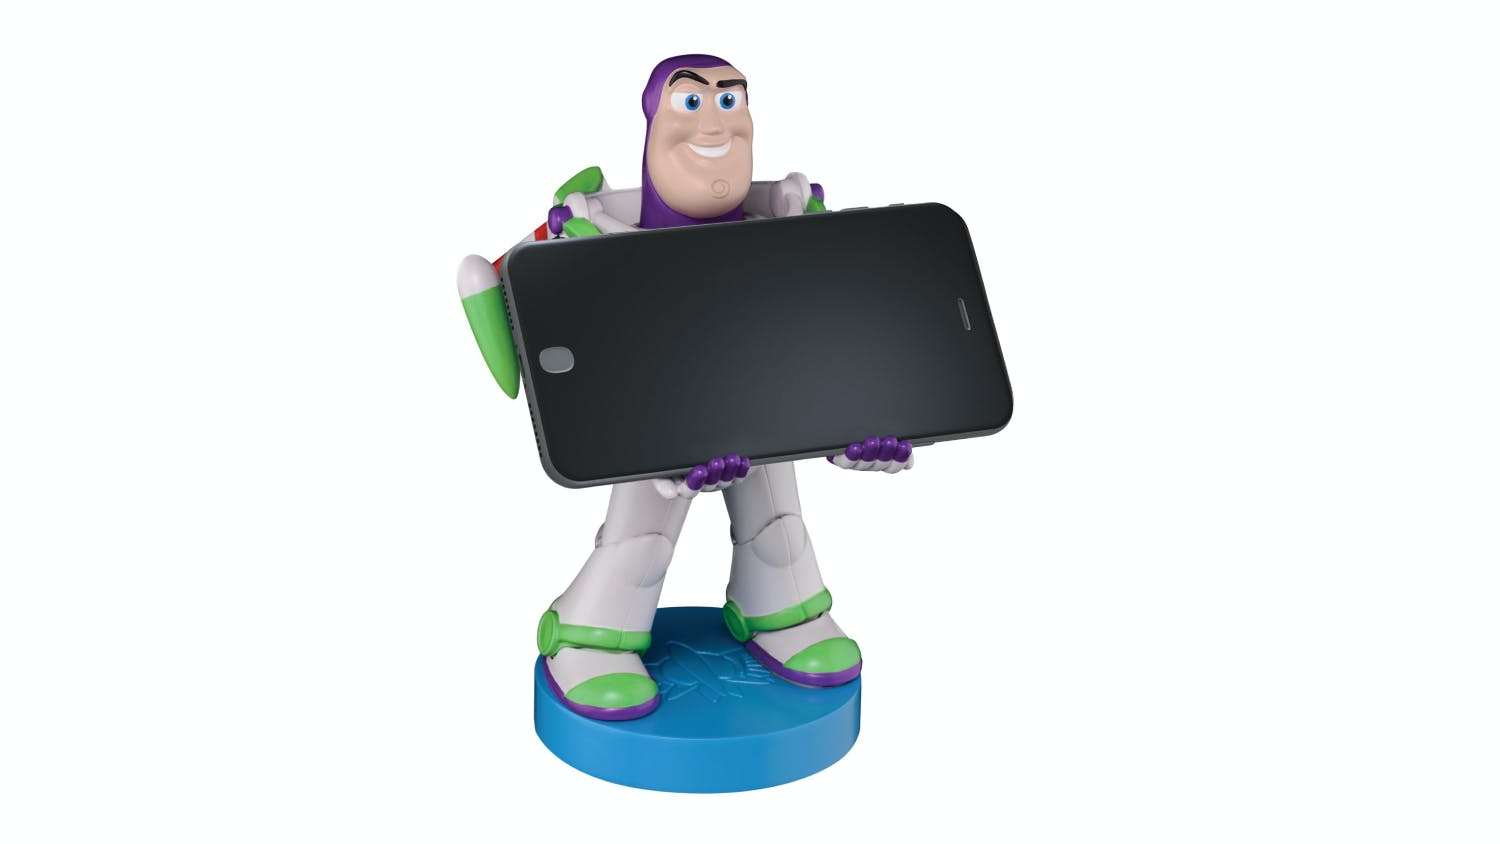 Cable Guys Phone/Controller Holder - Buzz Lightyear